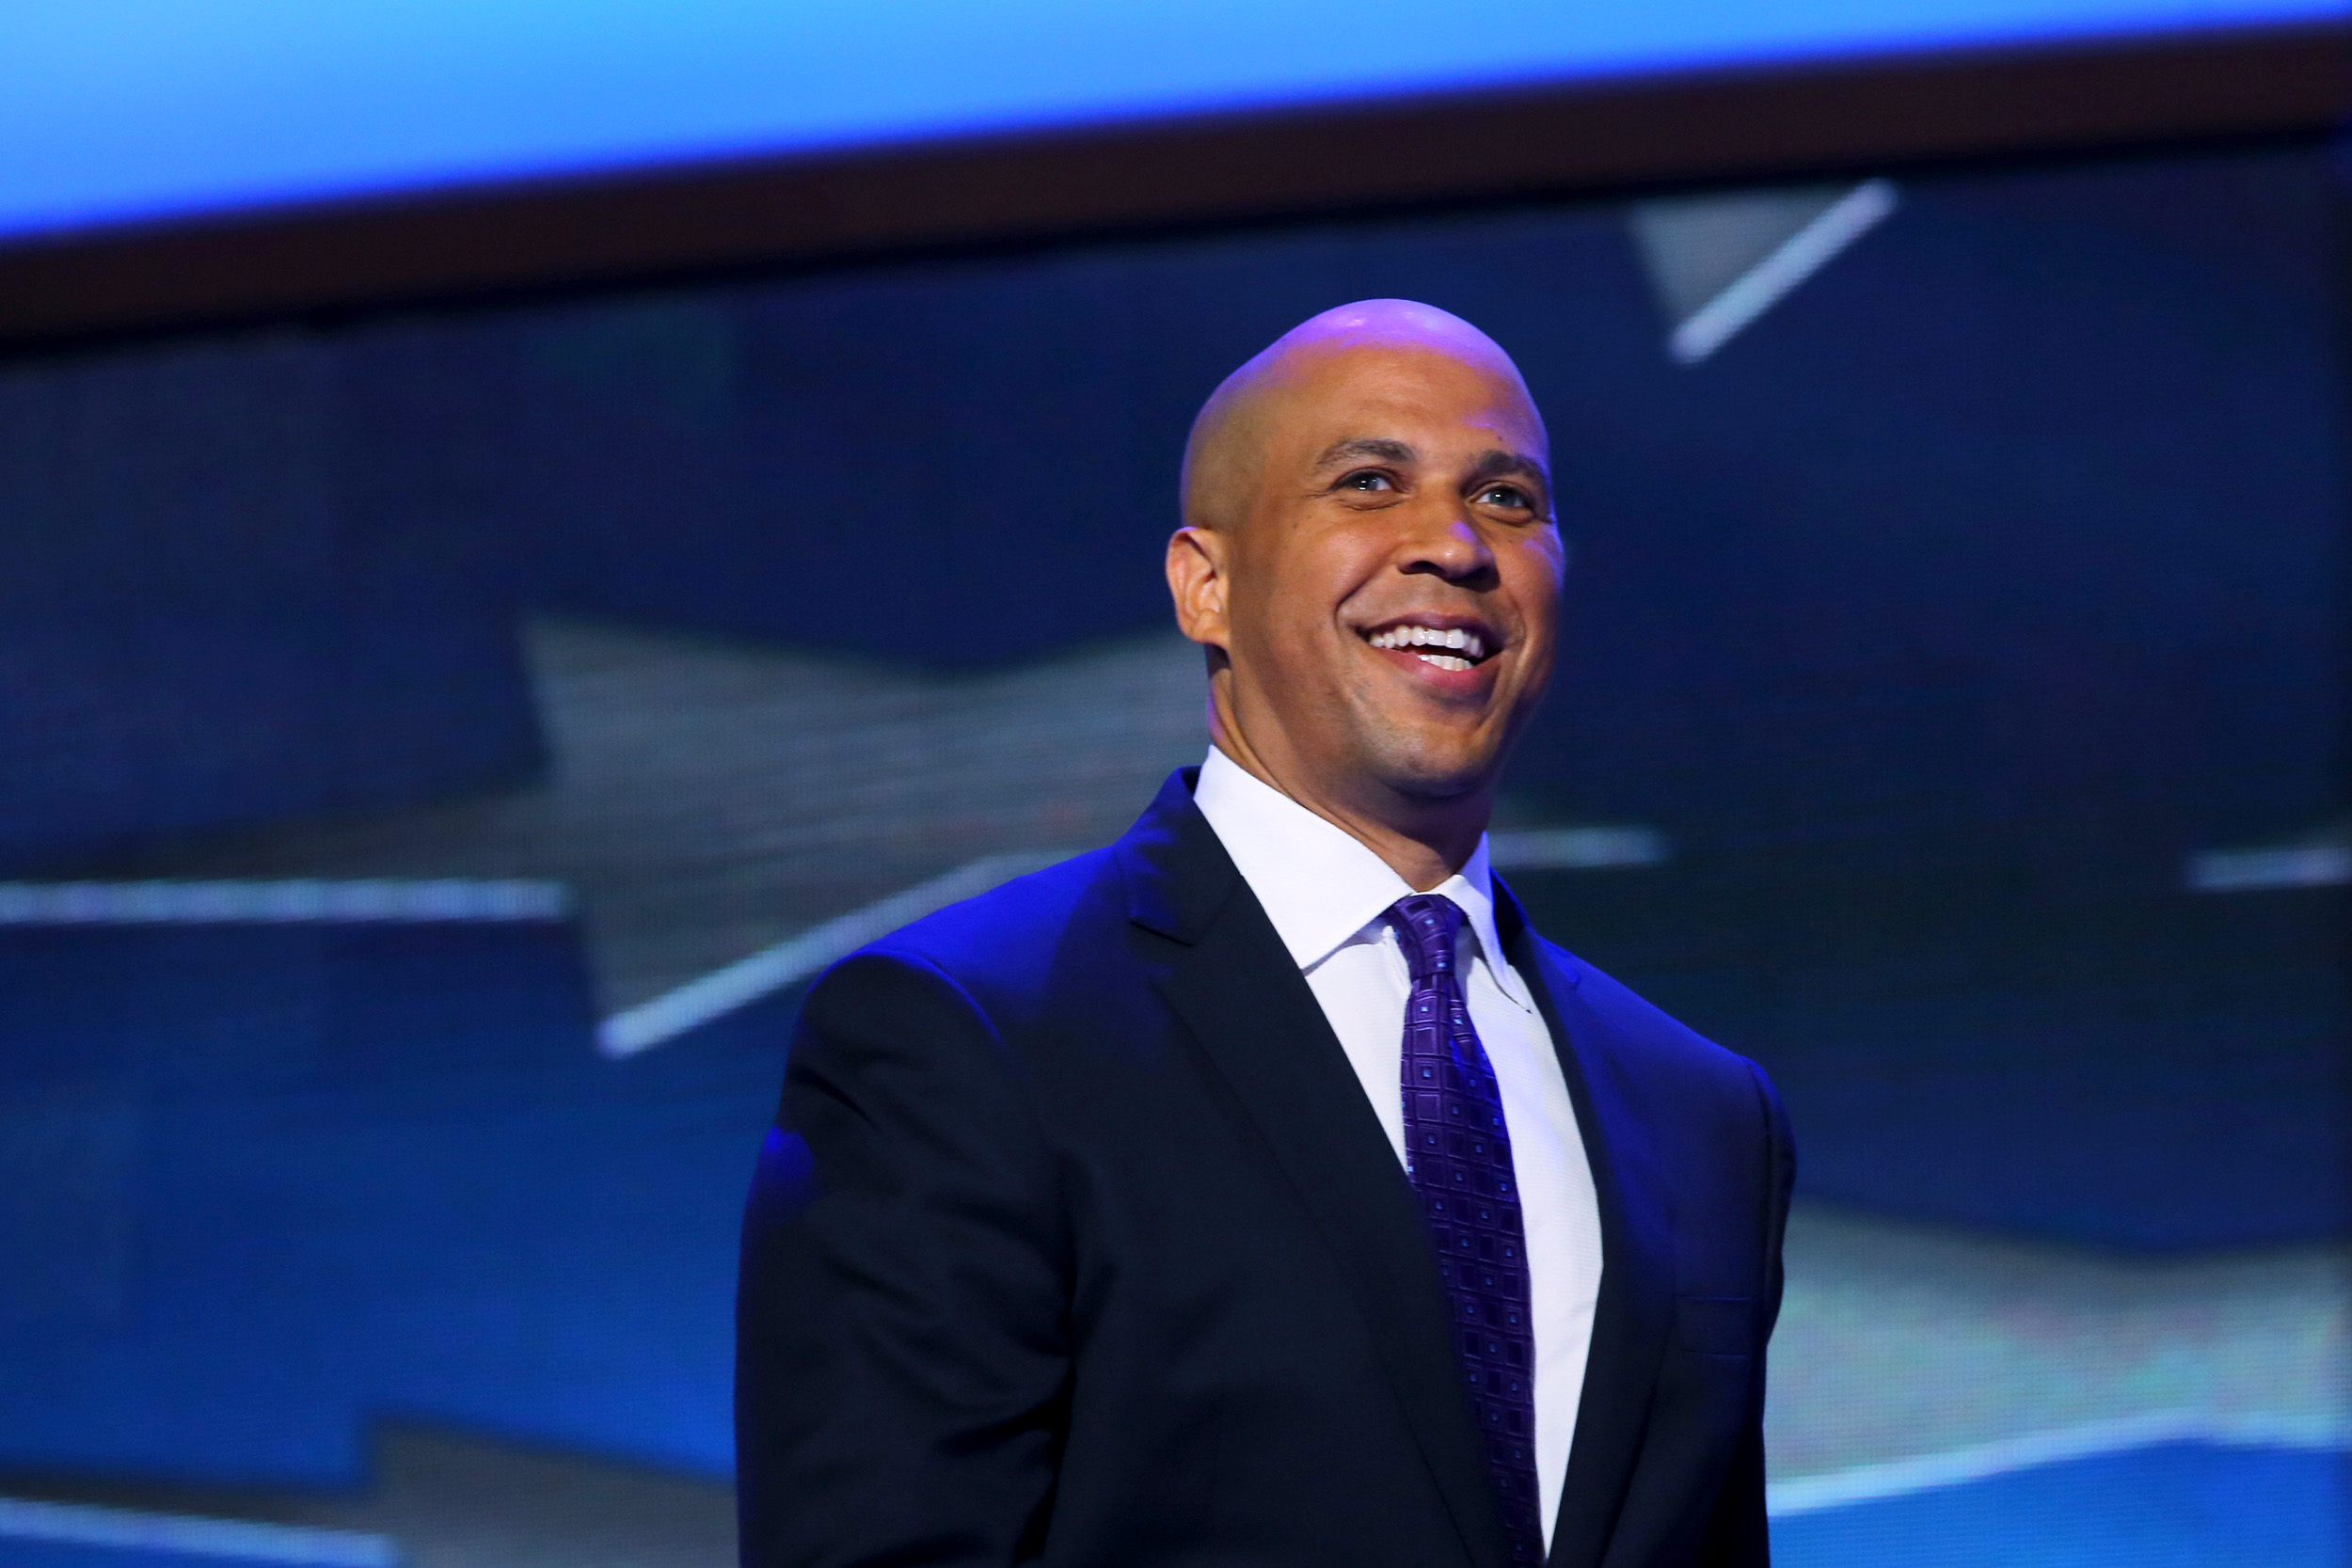 Image: Newark Mayor Cory Booker takes the stage to speak during day one of the Democratic National Convention at Time Warner Cable Arena on Sept. 4, 2012 in Charlotte, North Carolina.